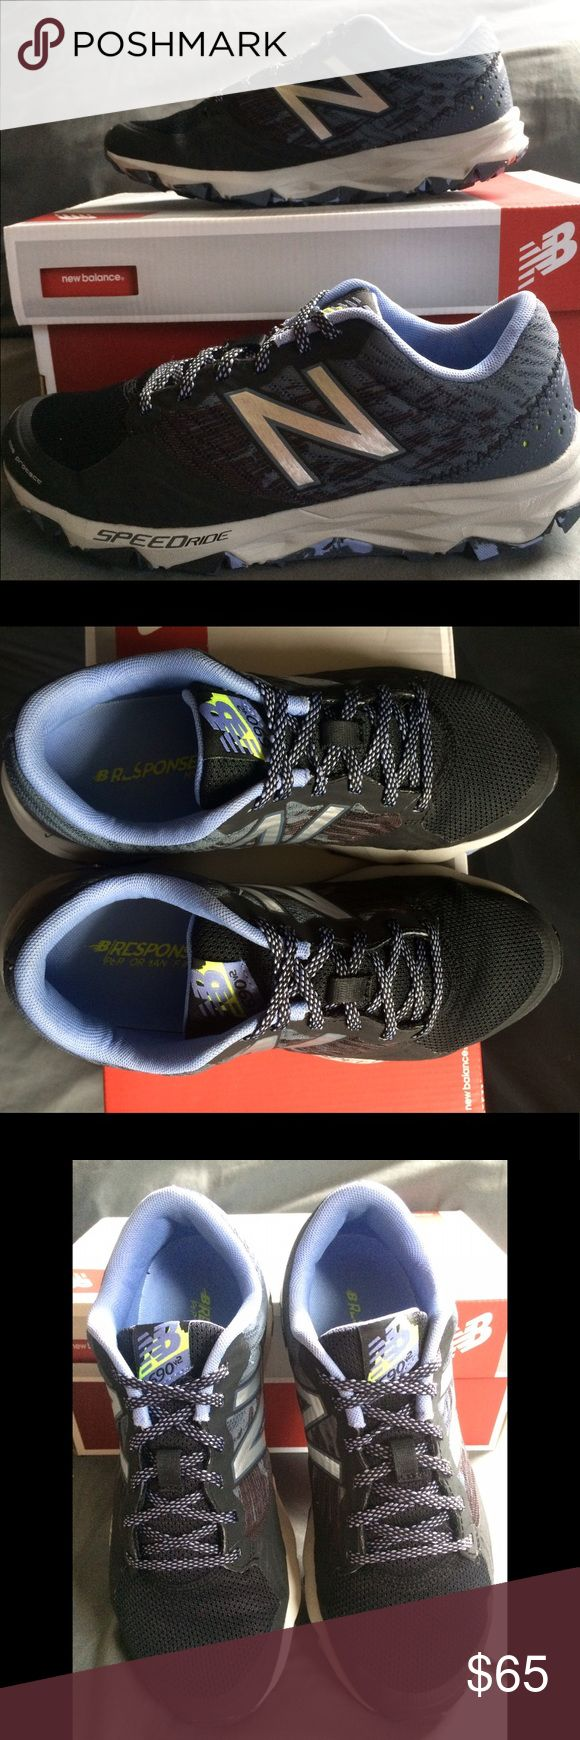 NEW BALANCE T690 V2 Women's New Balances, are great for trail running. They are black and a mixture of a blue-ish, purple-ish color with a bit of silver. Only worn twice, in great condition! Item runs true to size! Offers are warmly welcomed! (: New Balance Shoes Sneakers